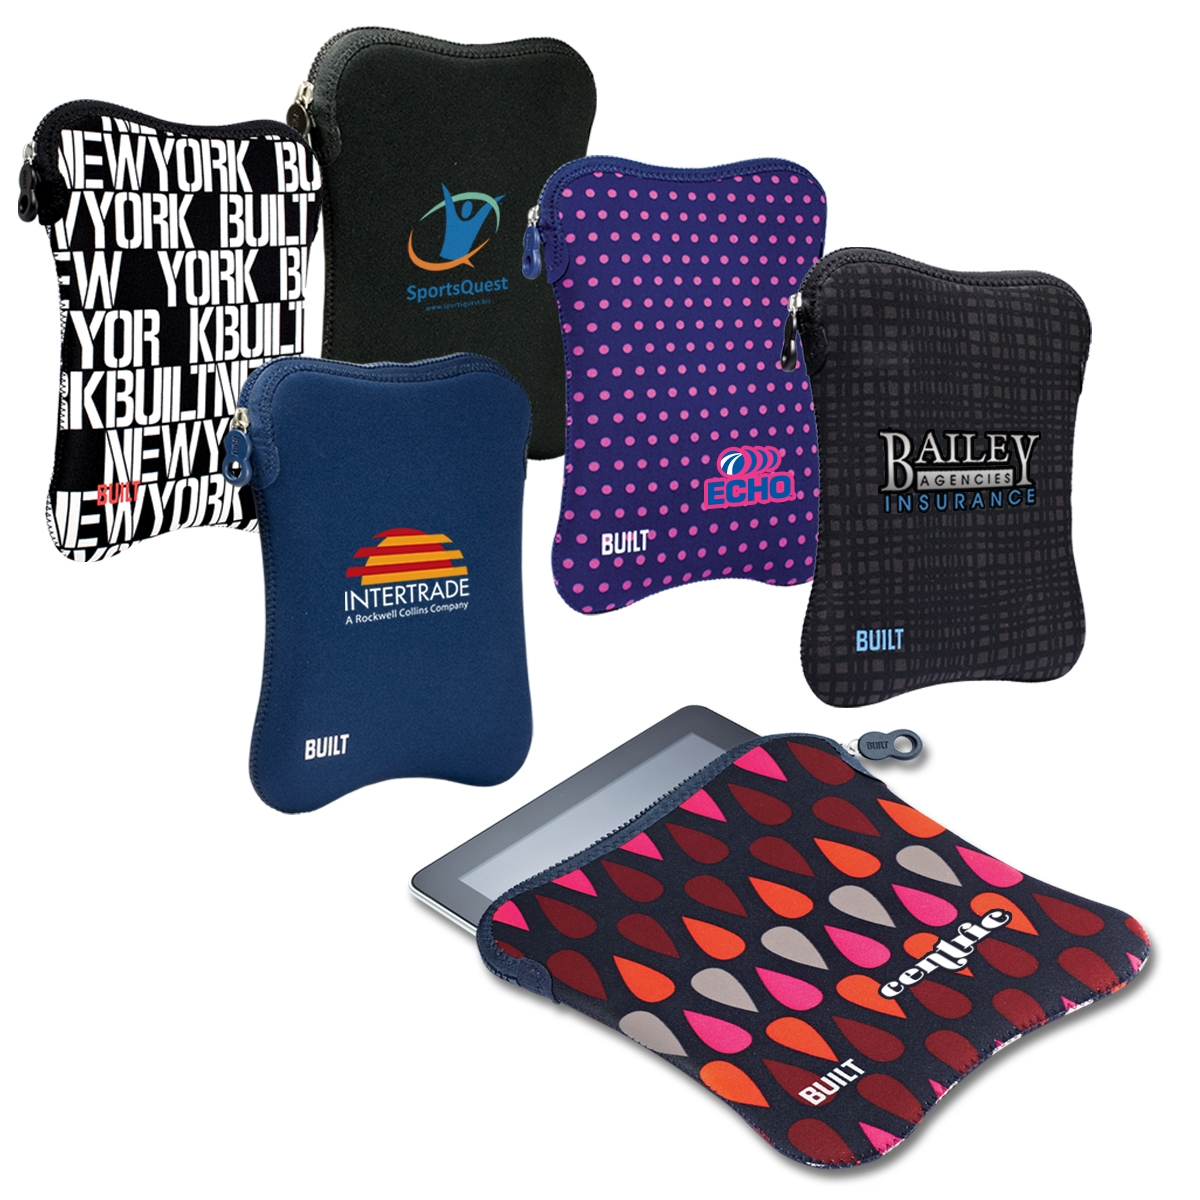 By Jason Robbins, CEO of ePromos Promotional Products When customers ...